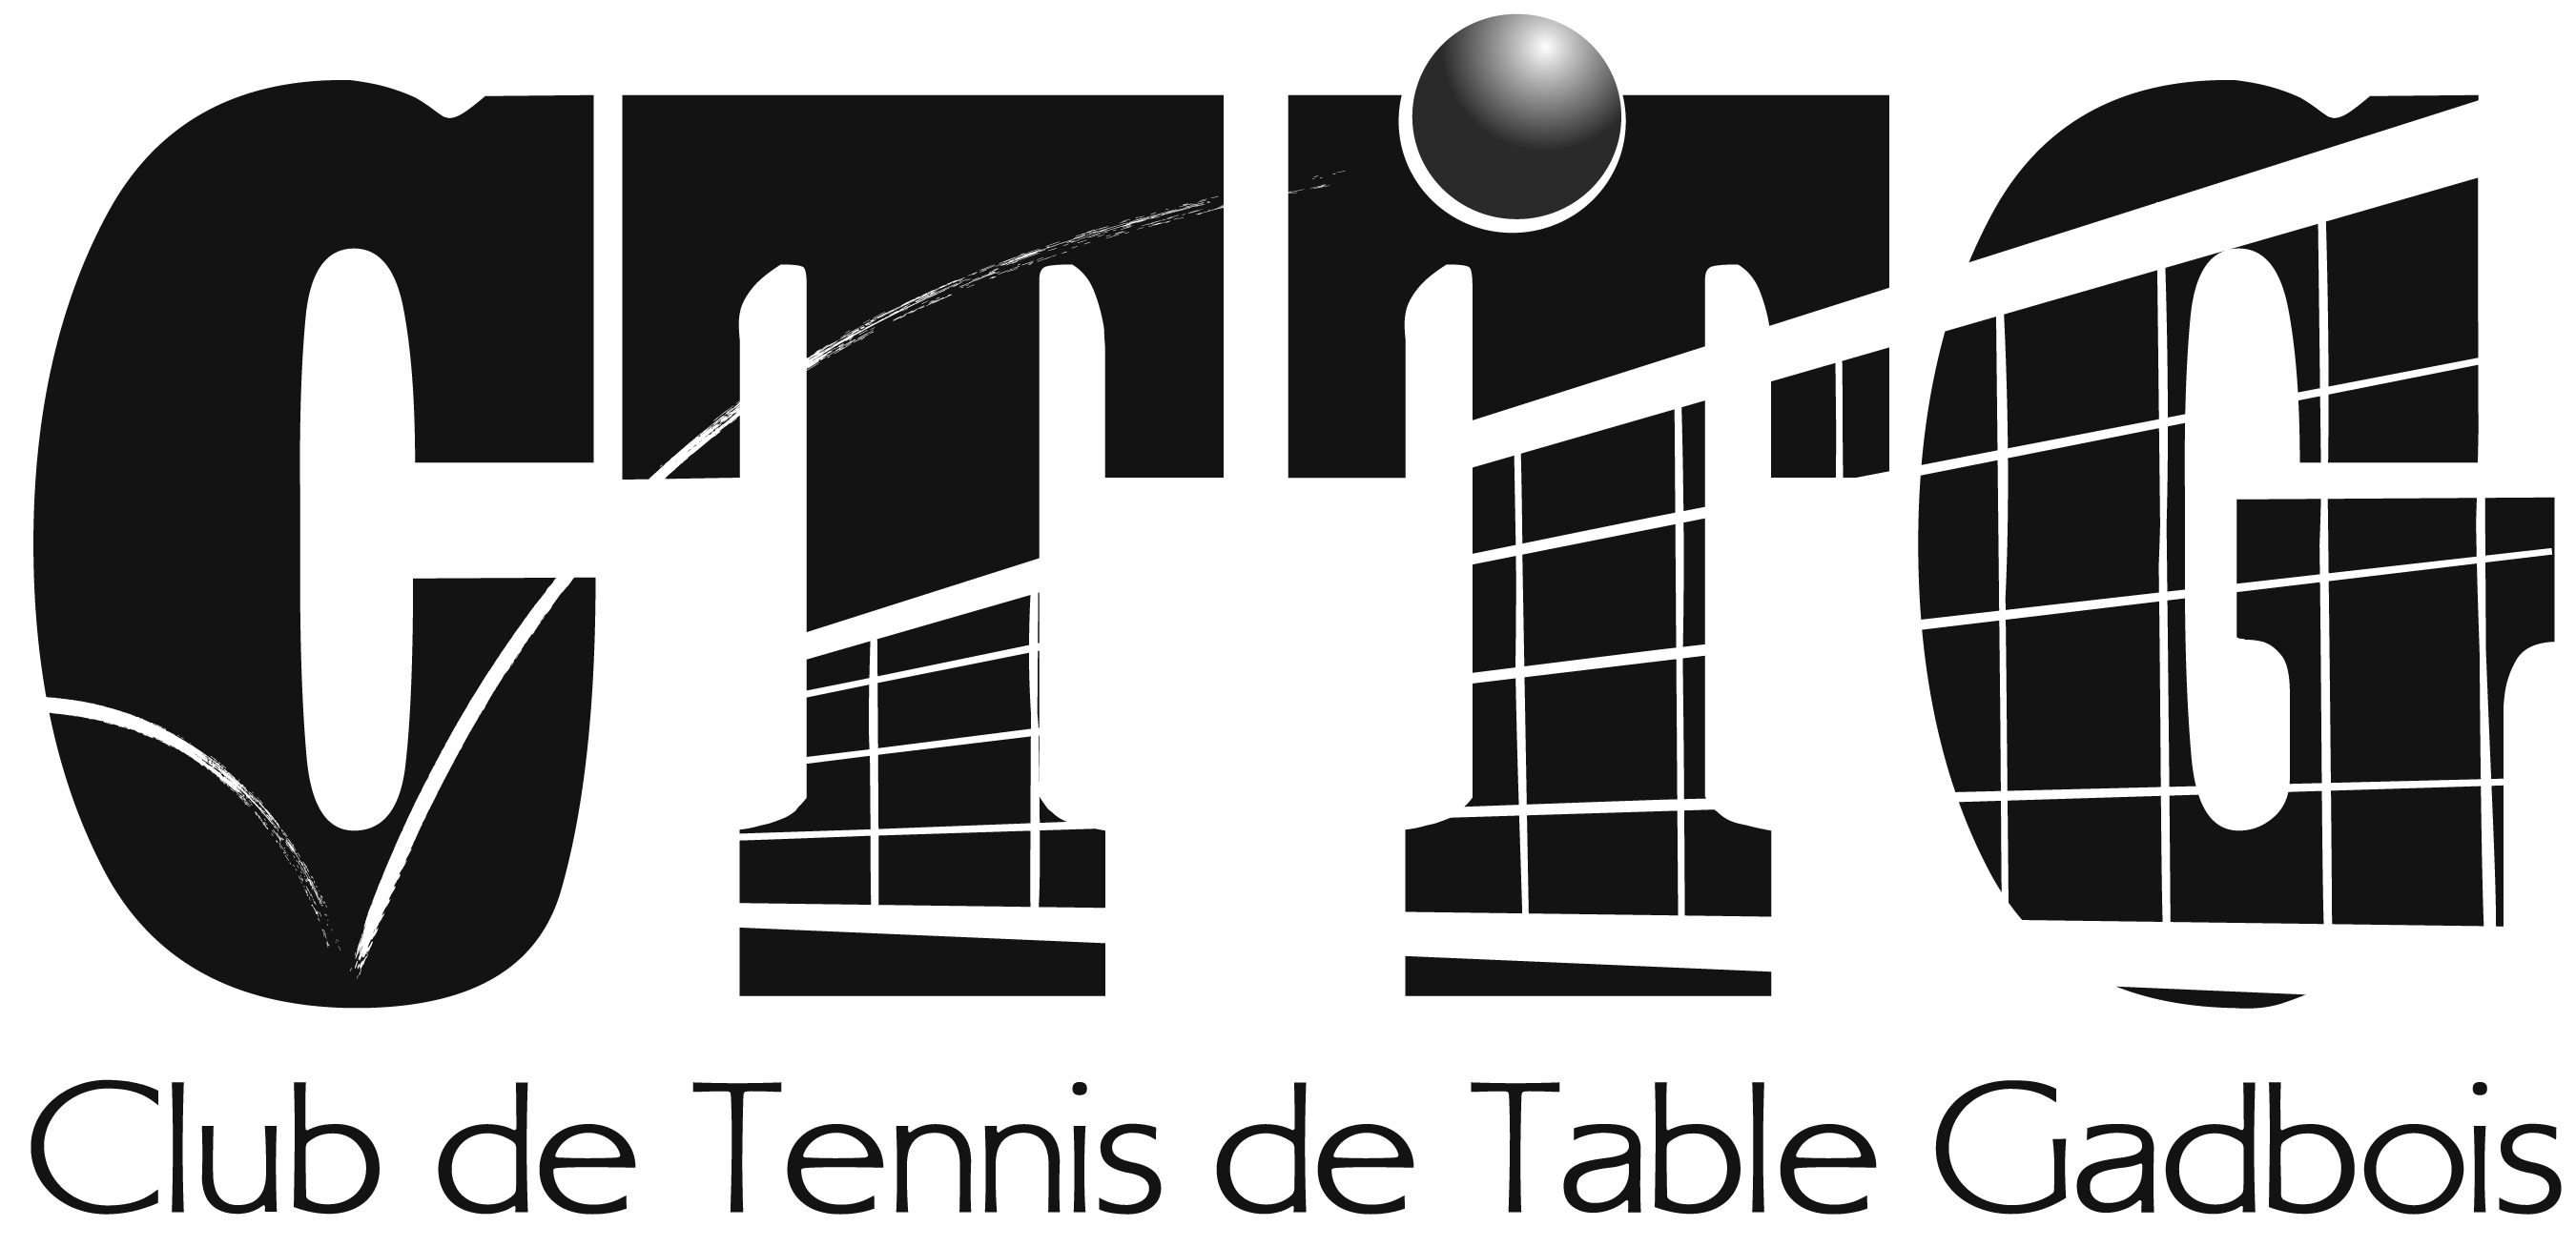 Logo du club de tennis de table Gadbois de Montréal